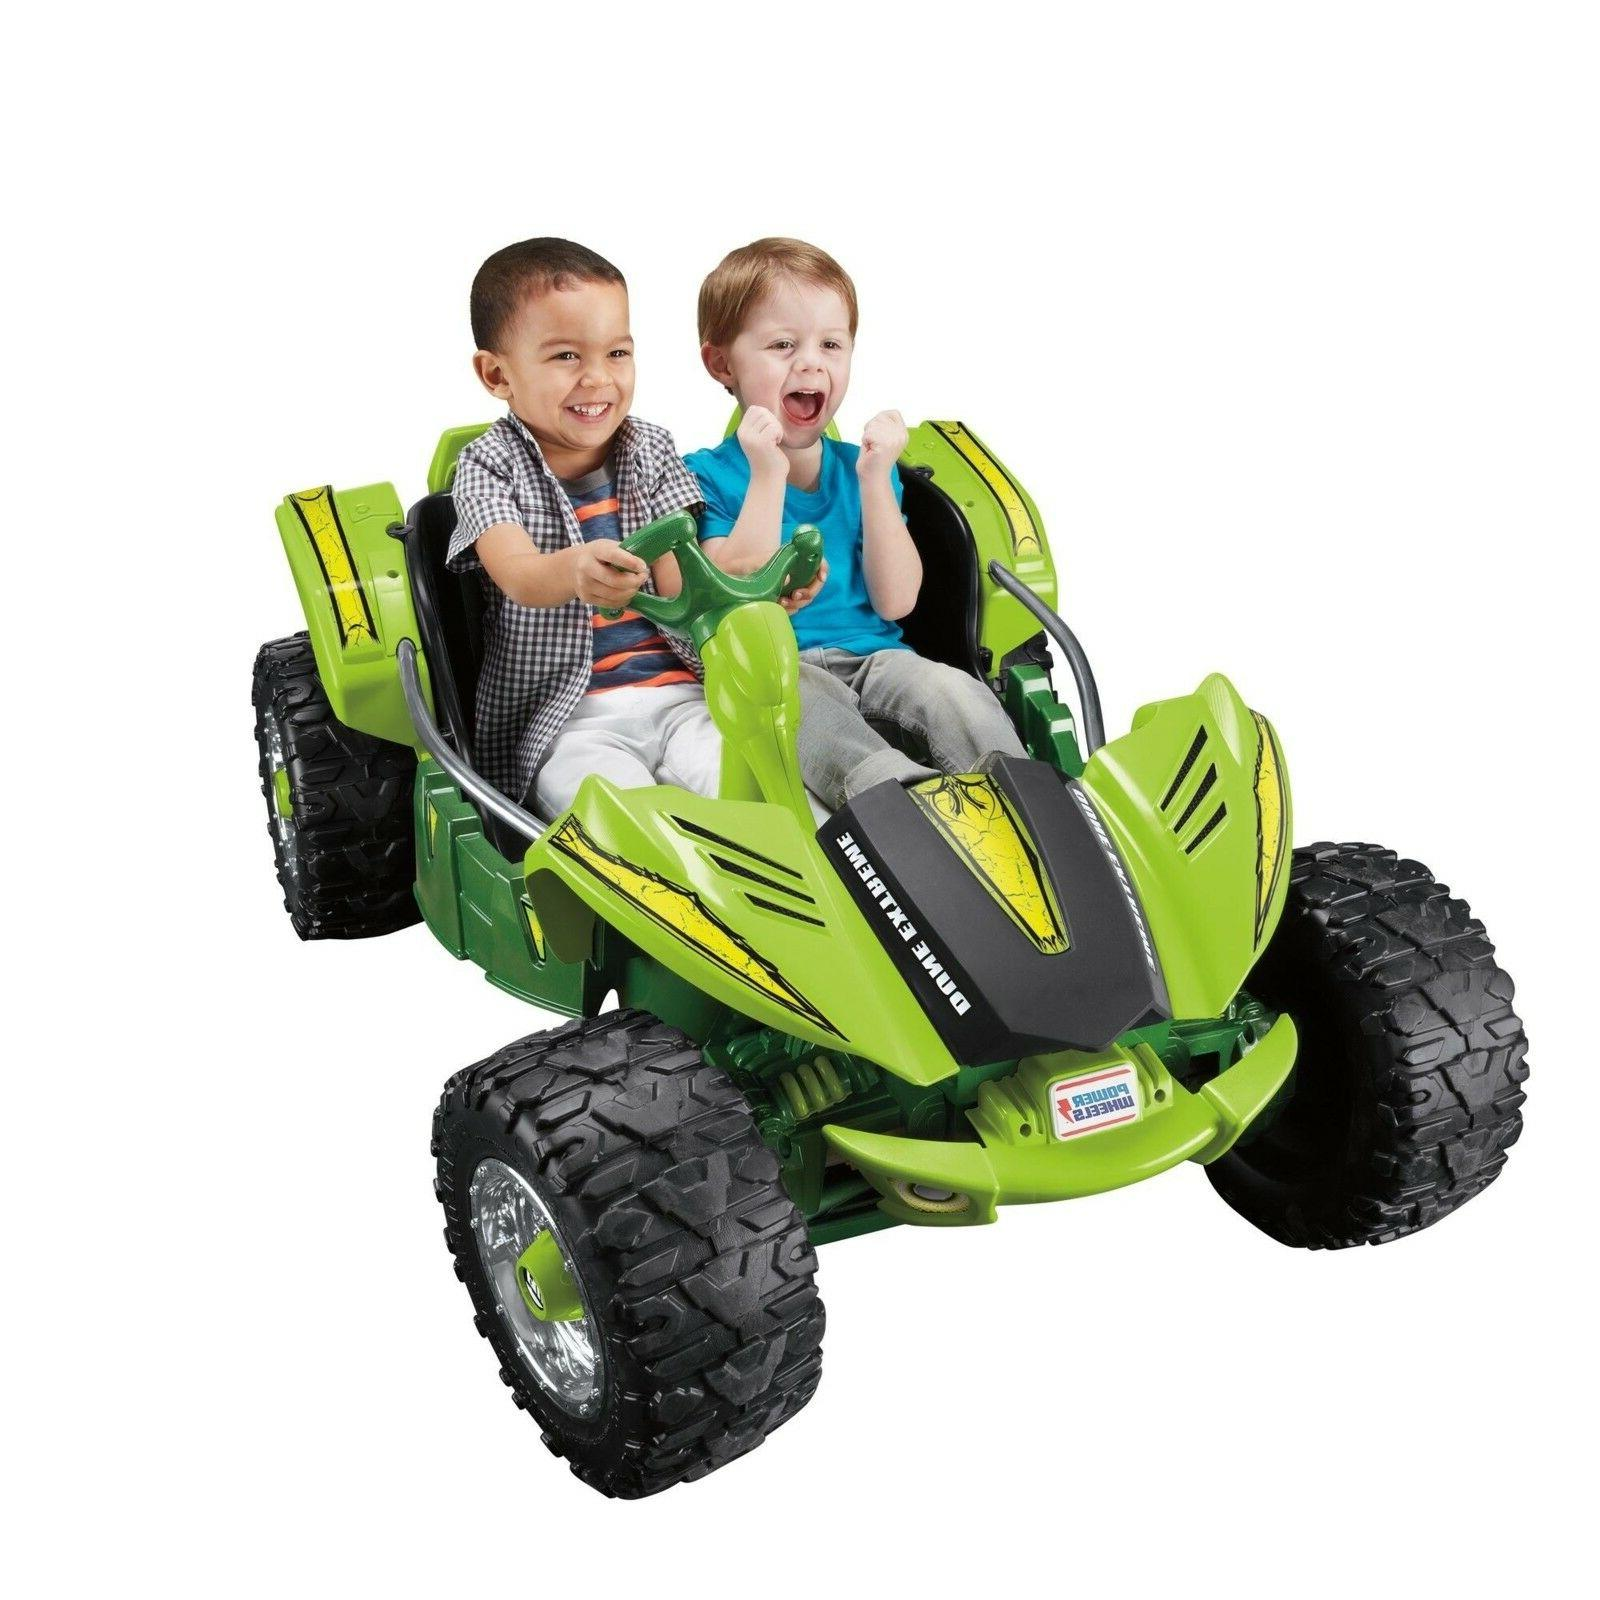 Kids Riding Toy Car 2 Seater Battery Power Ride On Dune Bugg